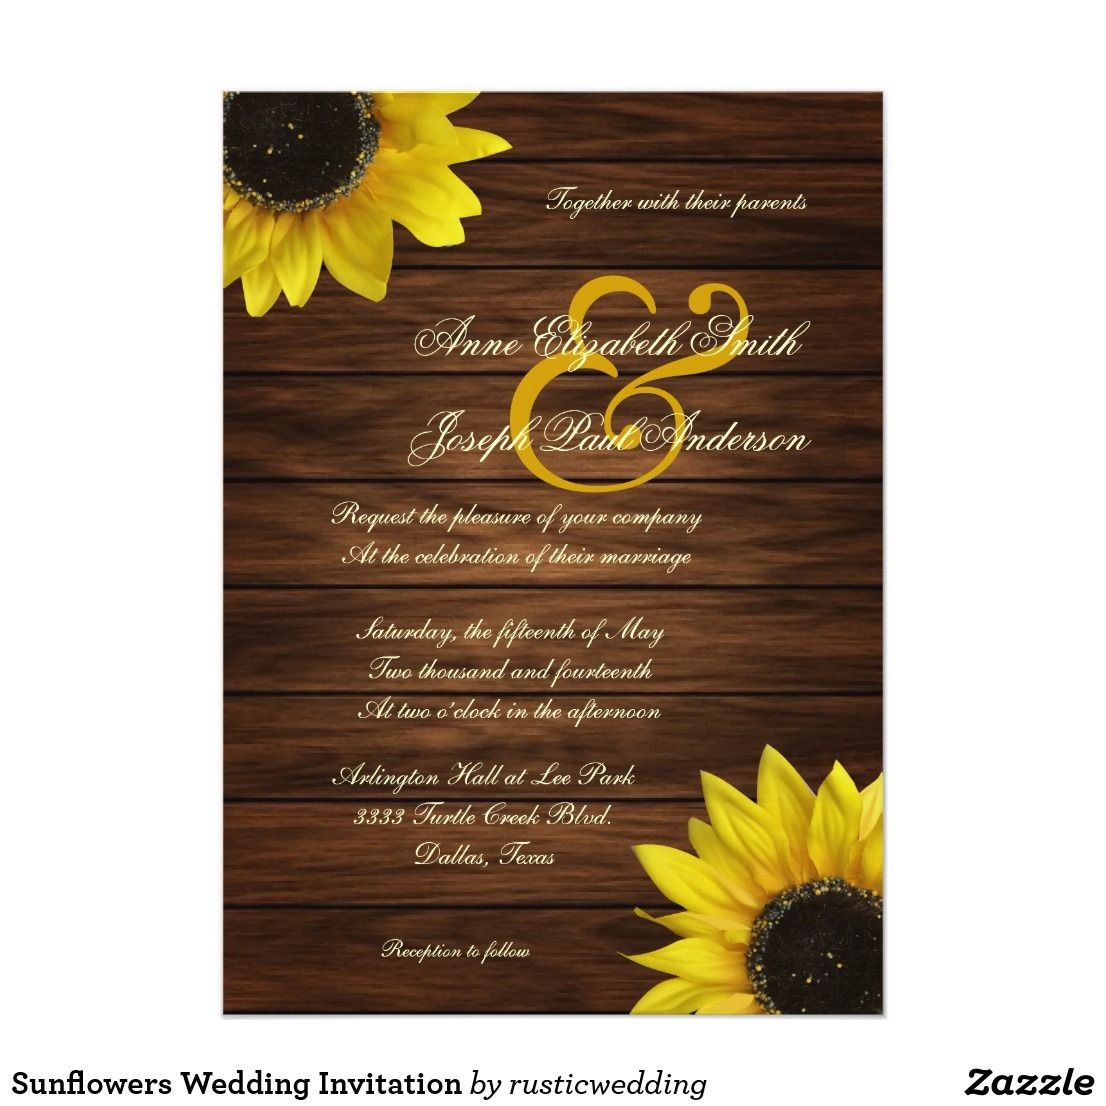 Sunflowers Wedding Invitation (With images